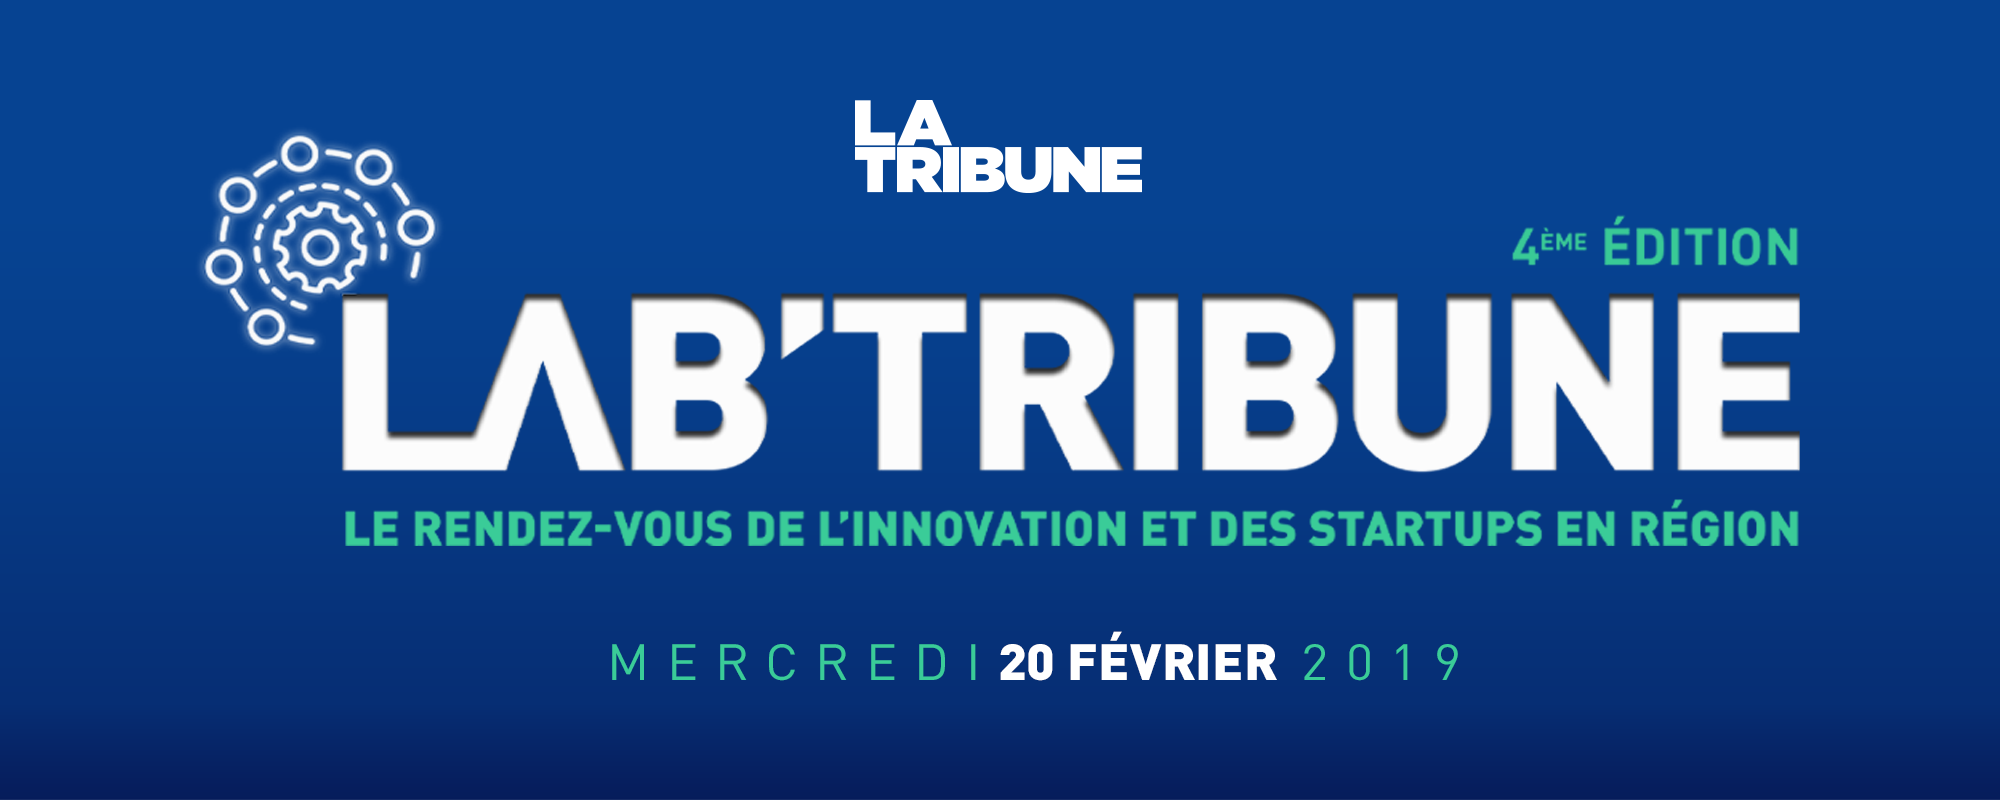 LAB_TRIBUNE_2019_HEADER_FACEBOOK